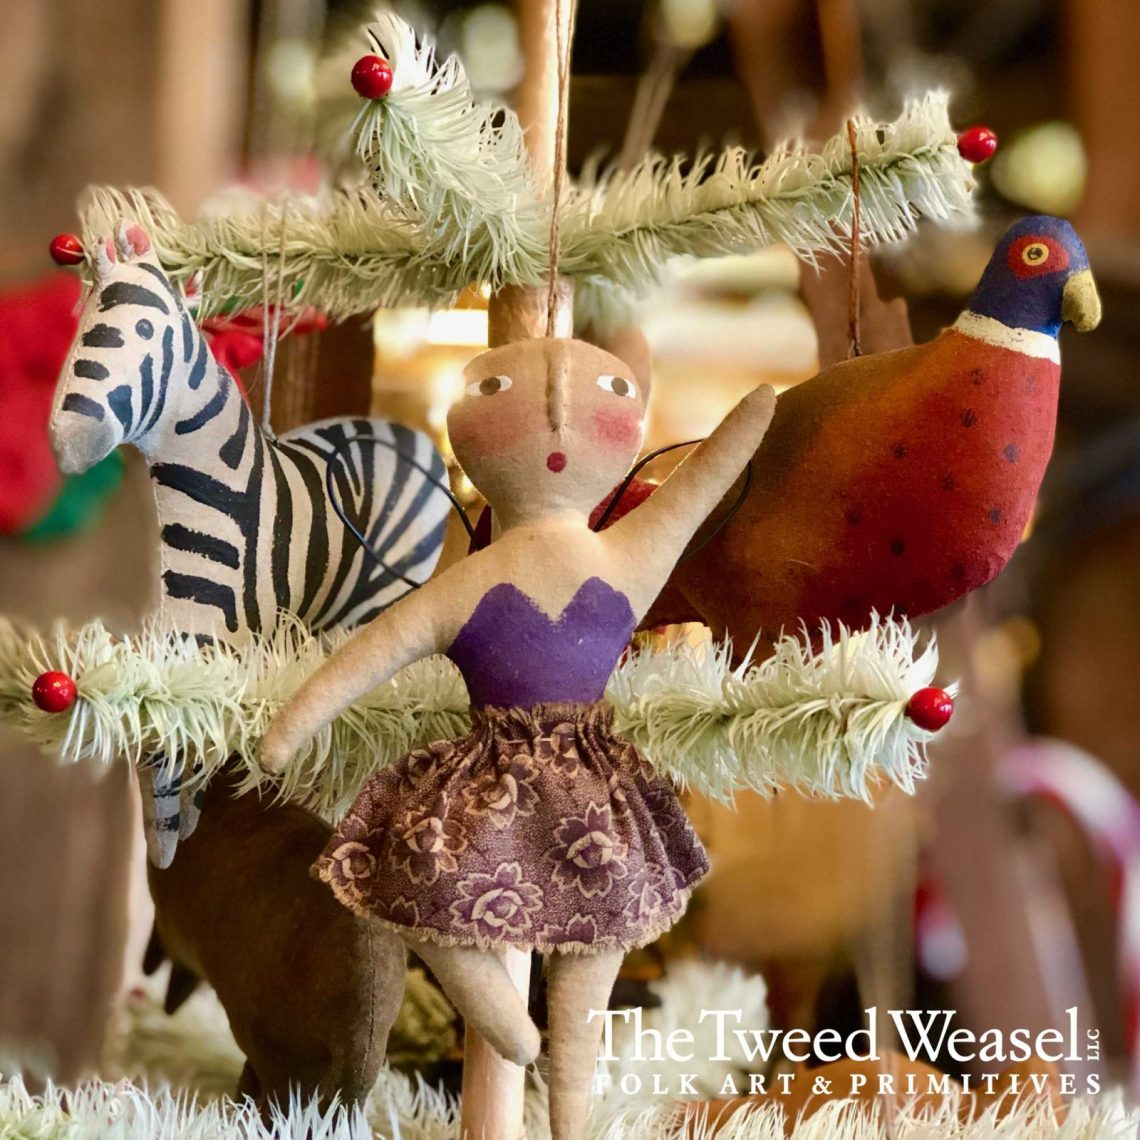 homemade Christmas ornaments of a ballerina, a zebra, and a bird